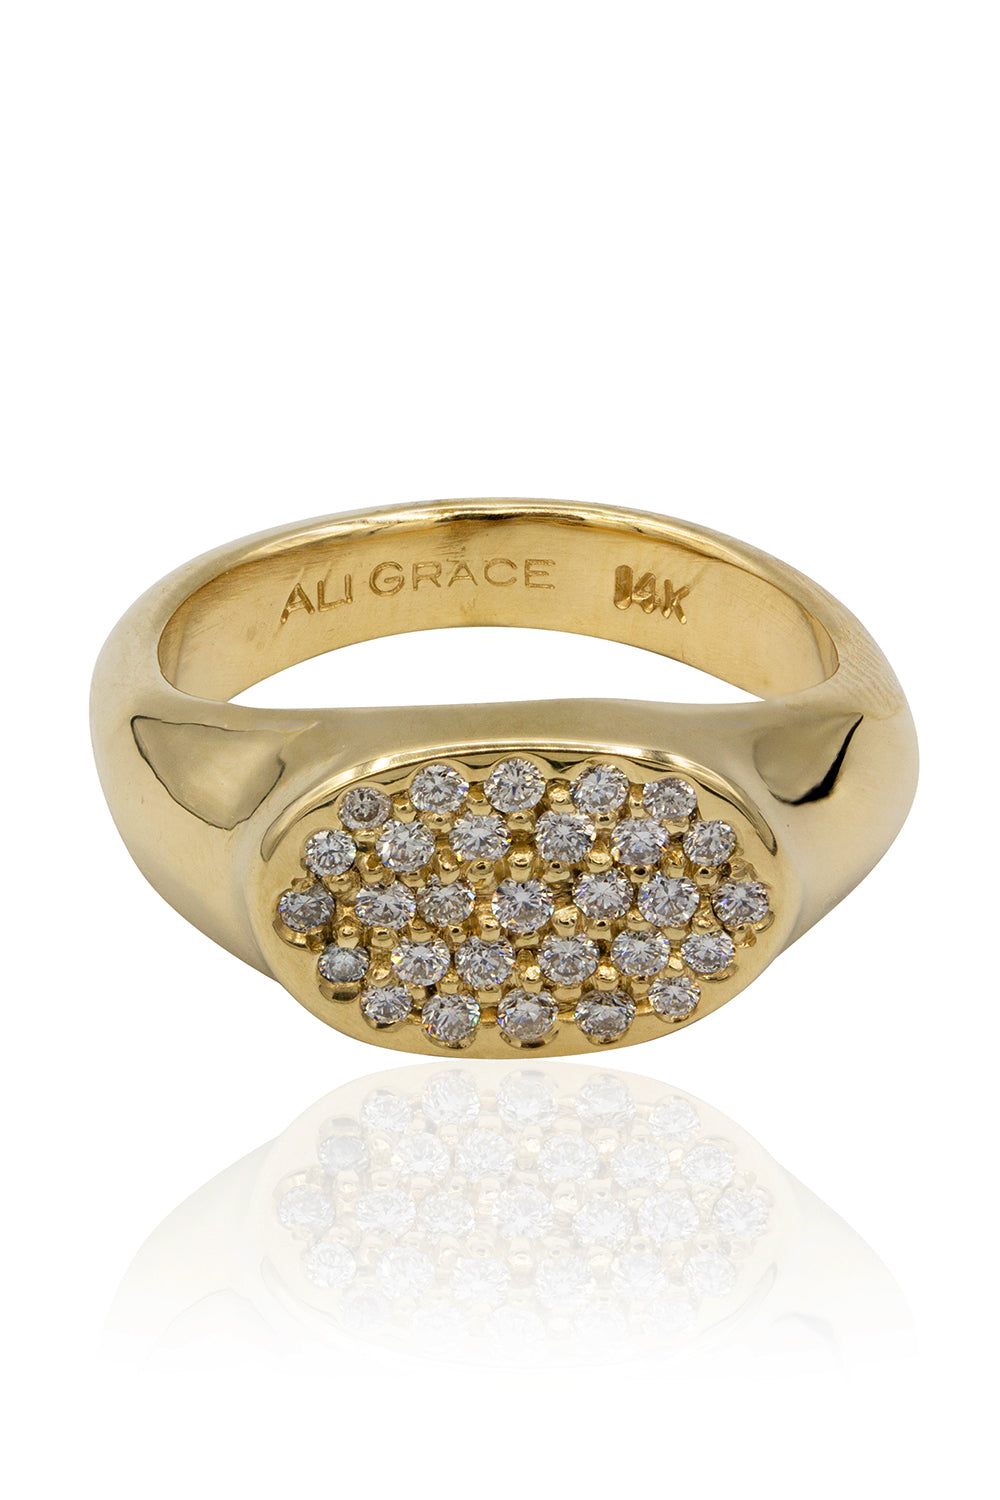 Petite Gold Signet Ring with Pave Diamonds